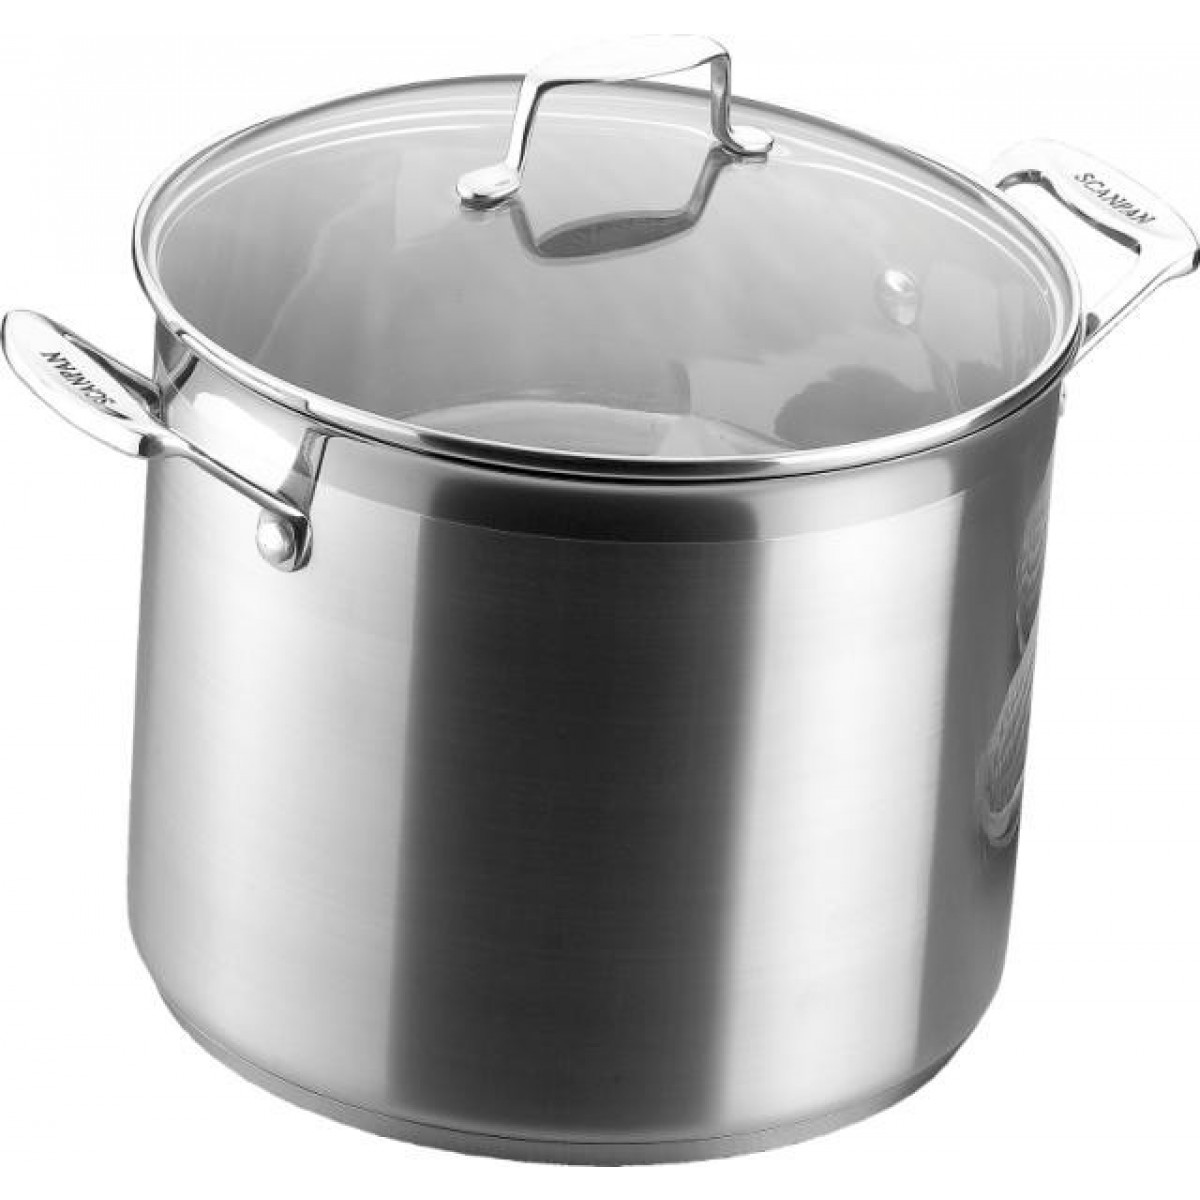 SCANPAN Suppegryde 11 ltr. impact